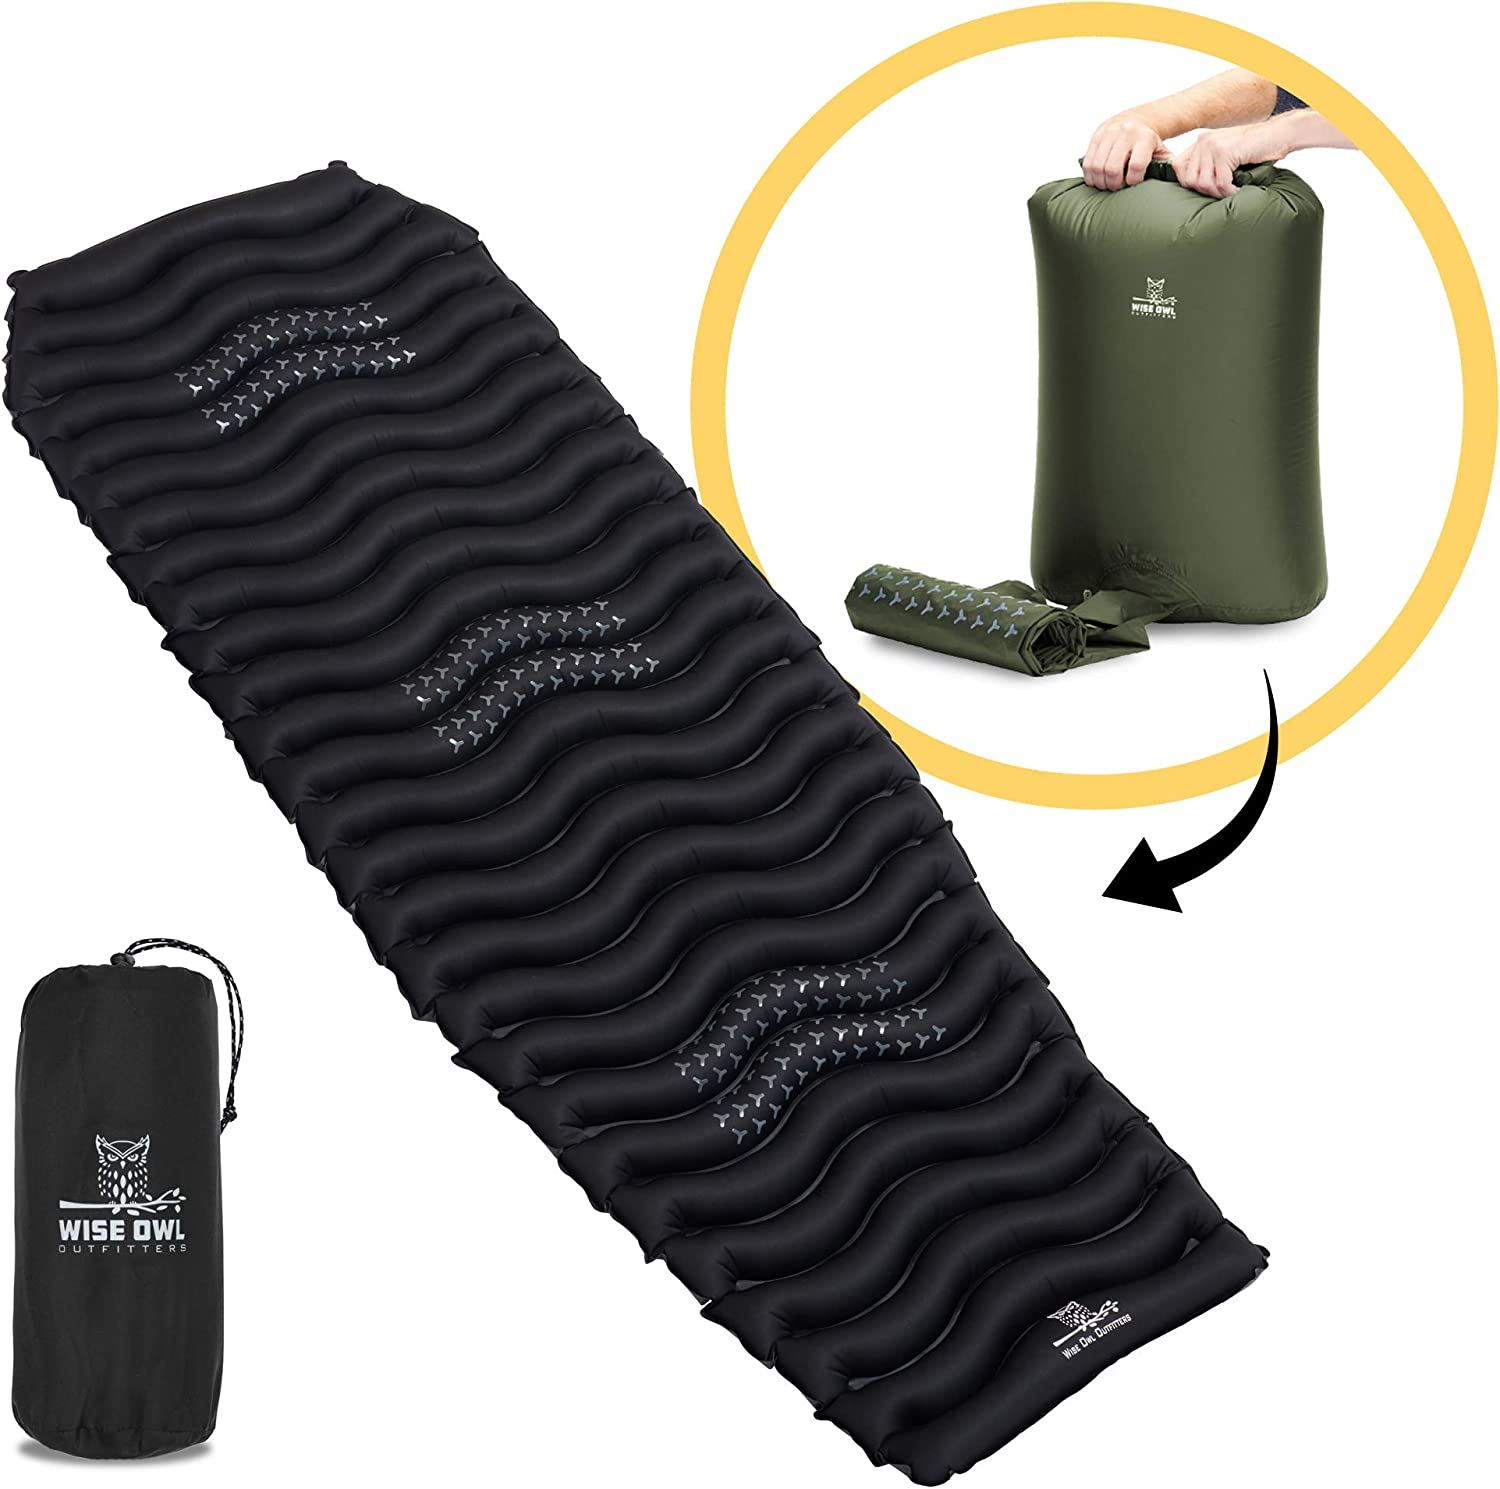 Wise Owl Outfitters Camping Pad – Premium Inflatable Camping Sleeping Mattress for Outdoor and Backpacking – Ultralight Compressible Mat – Bubble and Wave Design with Air Inflator Bag Pump Included